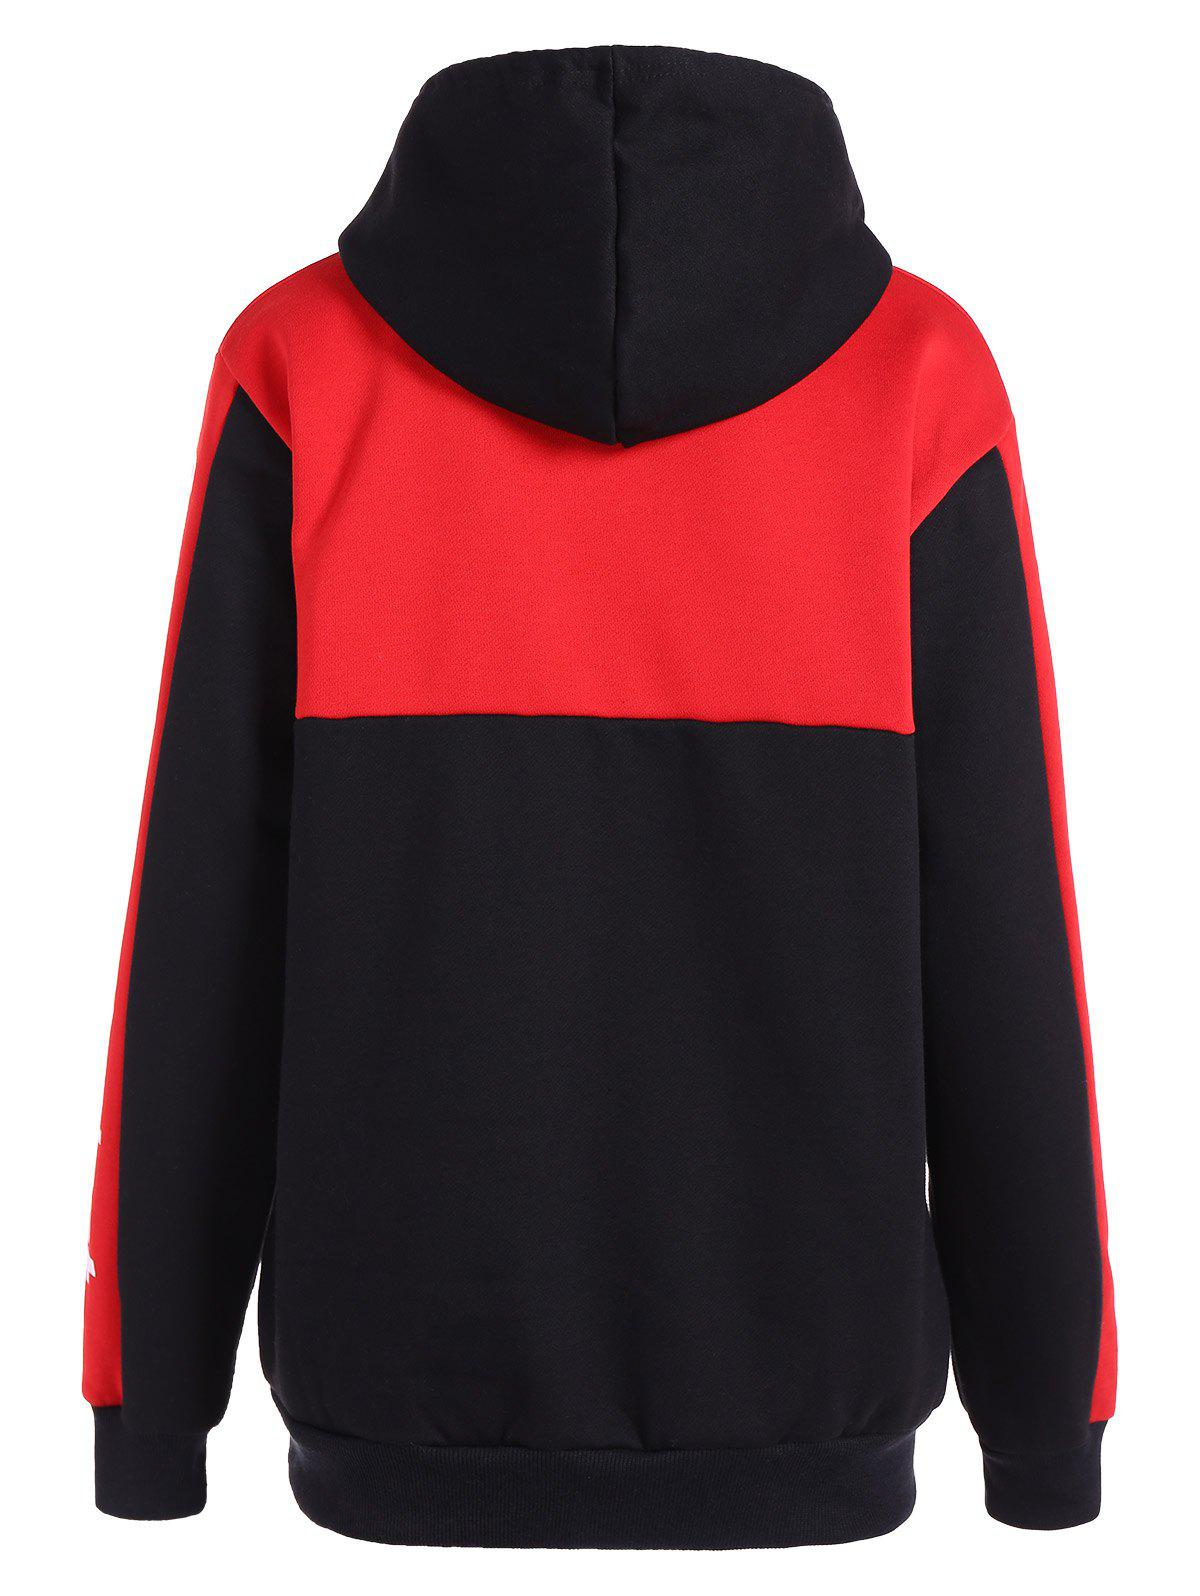 Colo Block Drawstring Letter Hoodie - RED L